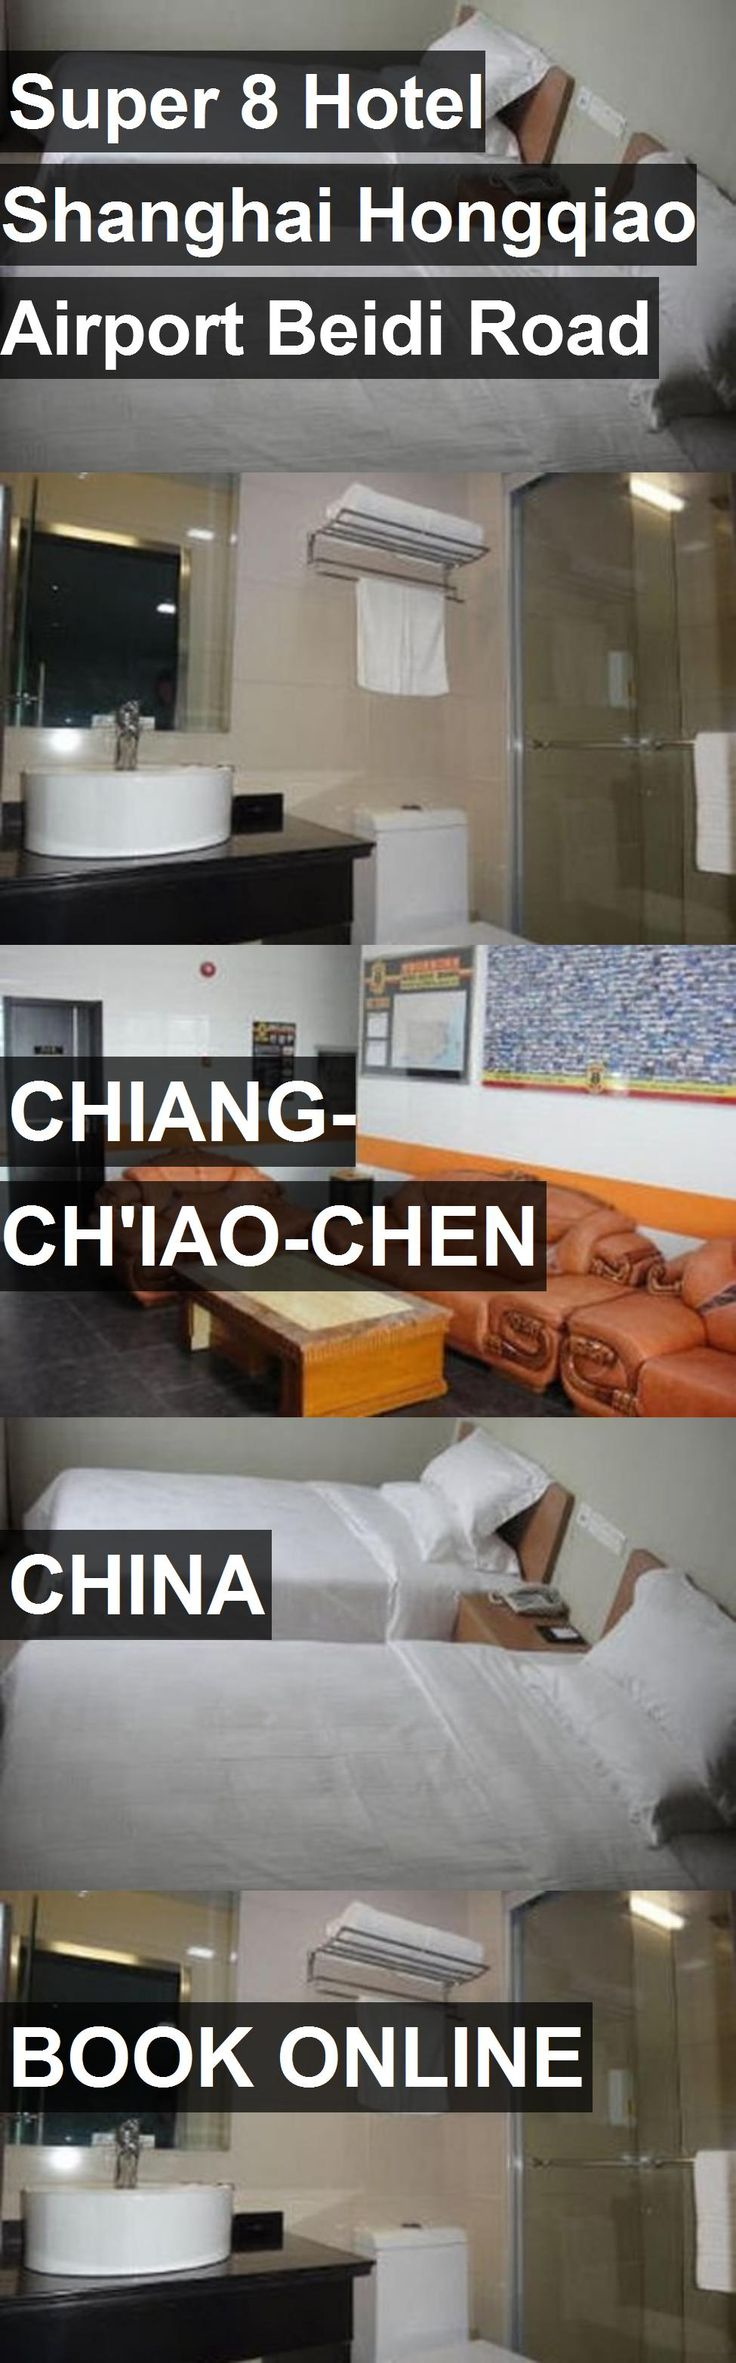 Hotel Super 8 Hotel Shanghai Hongqiao Airport Beidi Road in Chiang-ch'iao-chen, China. For more information, photos, reviews and best prices please follow the link. #China #Chiang-ch'iao-chen #Super8HotelShanghaiHongqiaoAirportBeidiRoad #hotel #travel #vacation